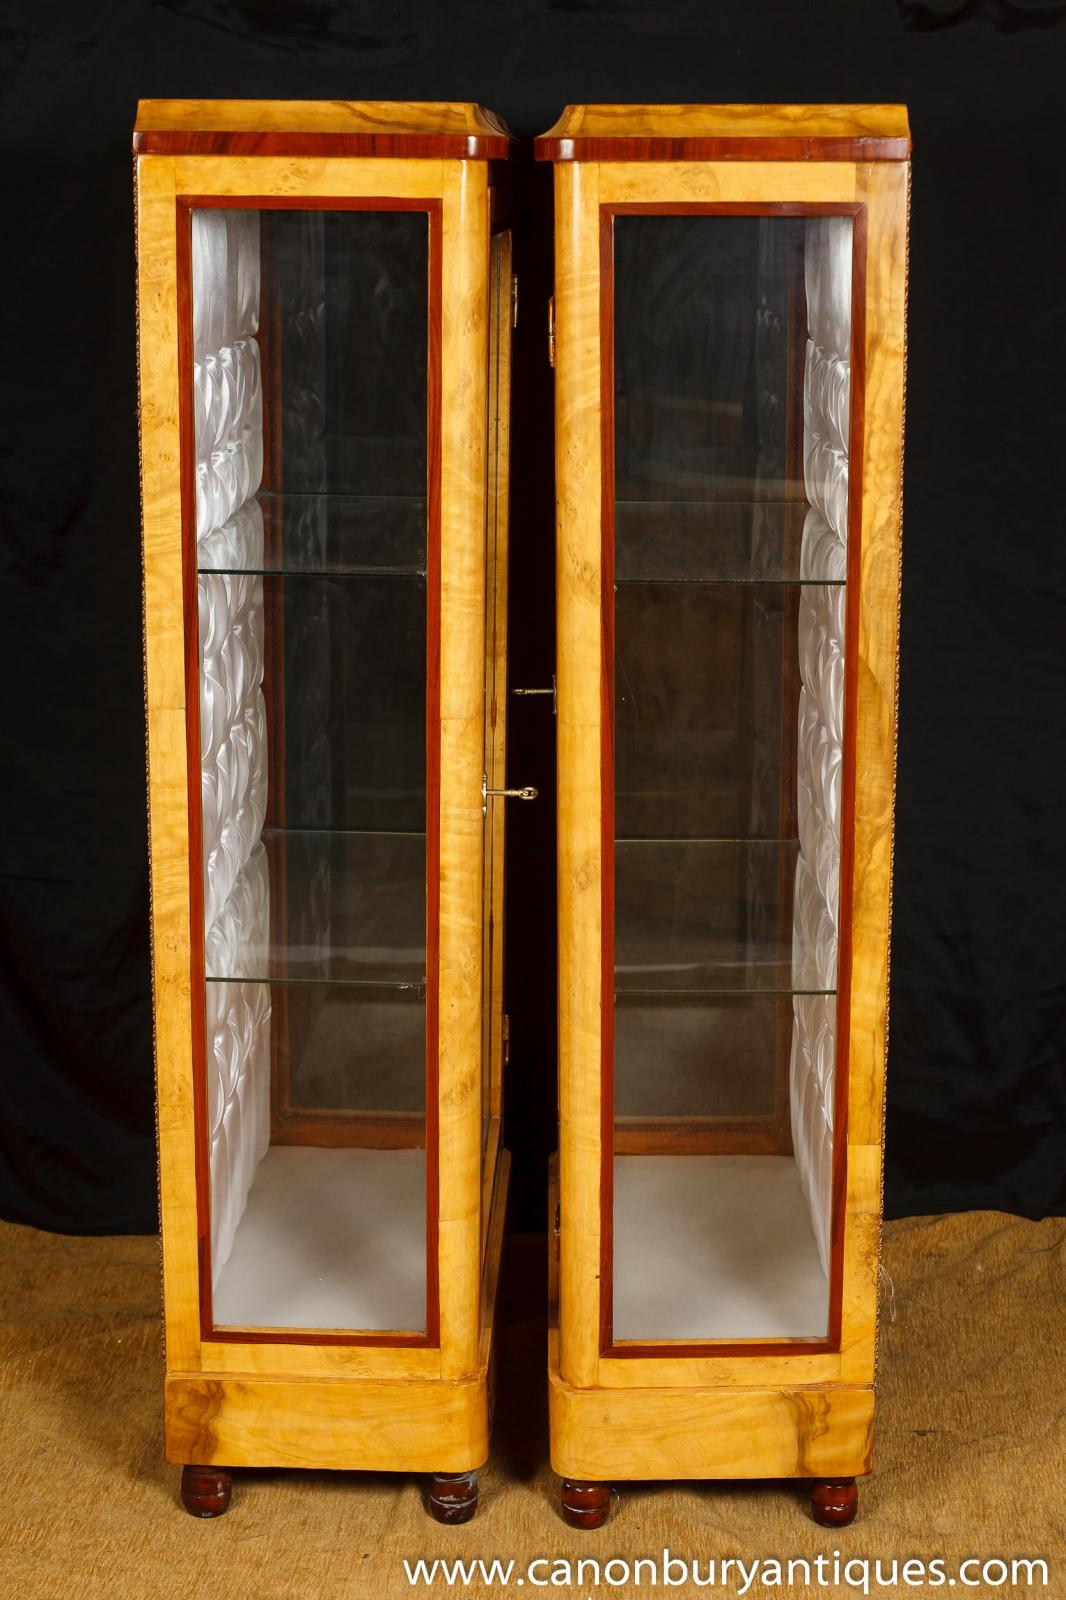 #C0830B Pair Art Deco Display Cabinets Glass Fronted Bijouterie  with 1066x1600 px of Highly Rated Glass Fronted Display Cabinets For The Home 16001066 picture/photo @ avoidforclosure.info